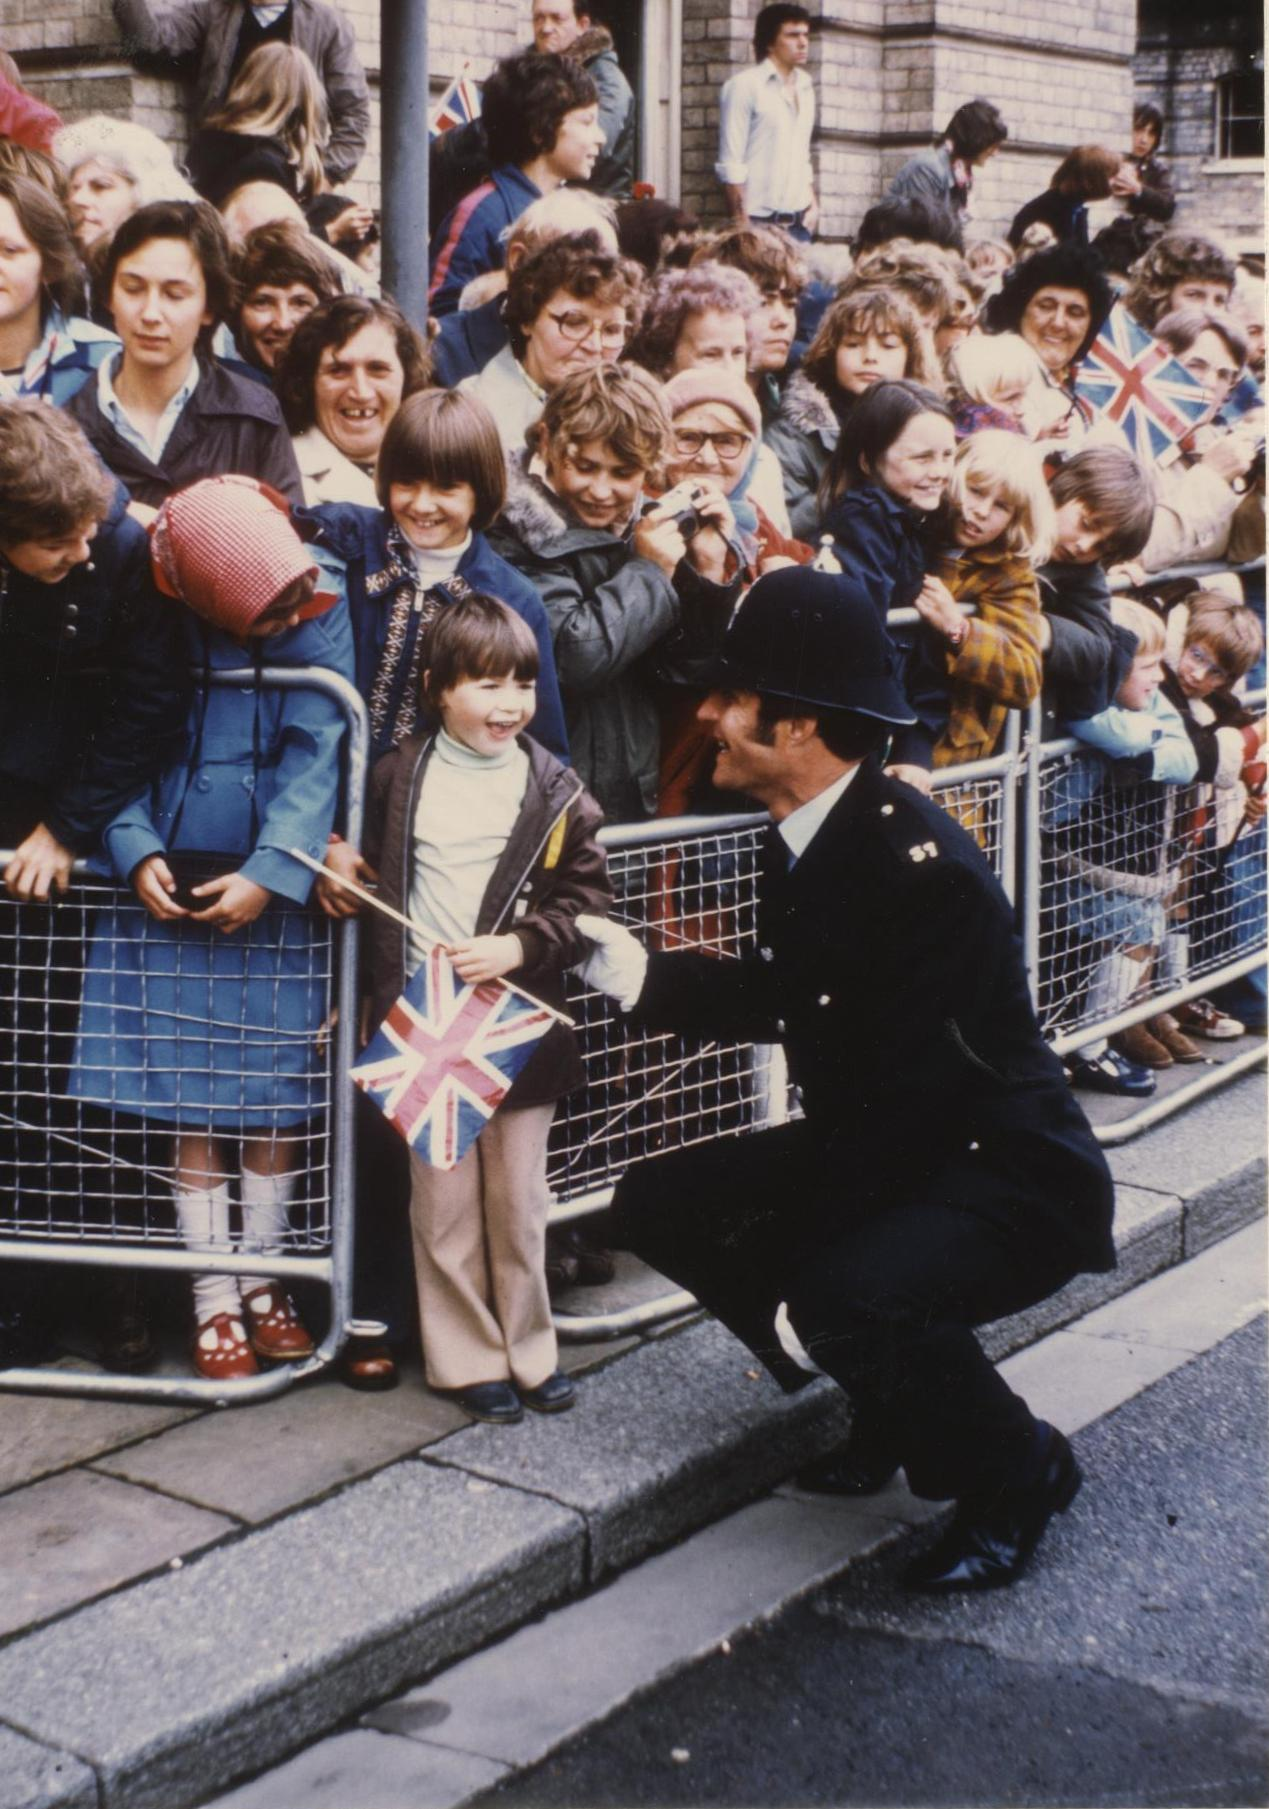 Policeman & child outside Grimsby Town Hall, awaiting arrival of Her Majesty The Queen 1977 (archive ref CCHU-4-1-9-2)